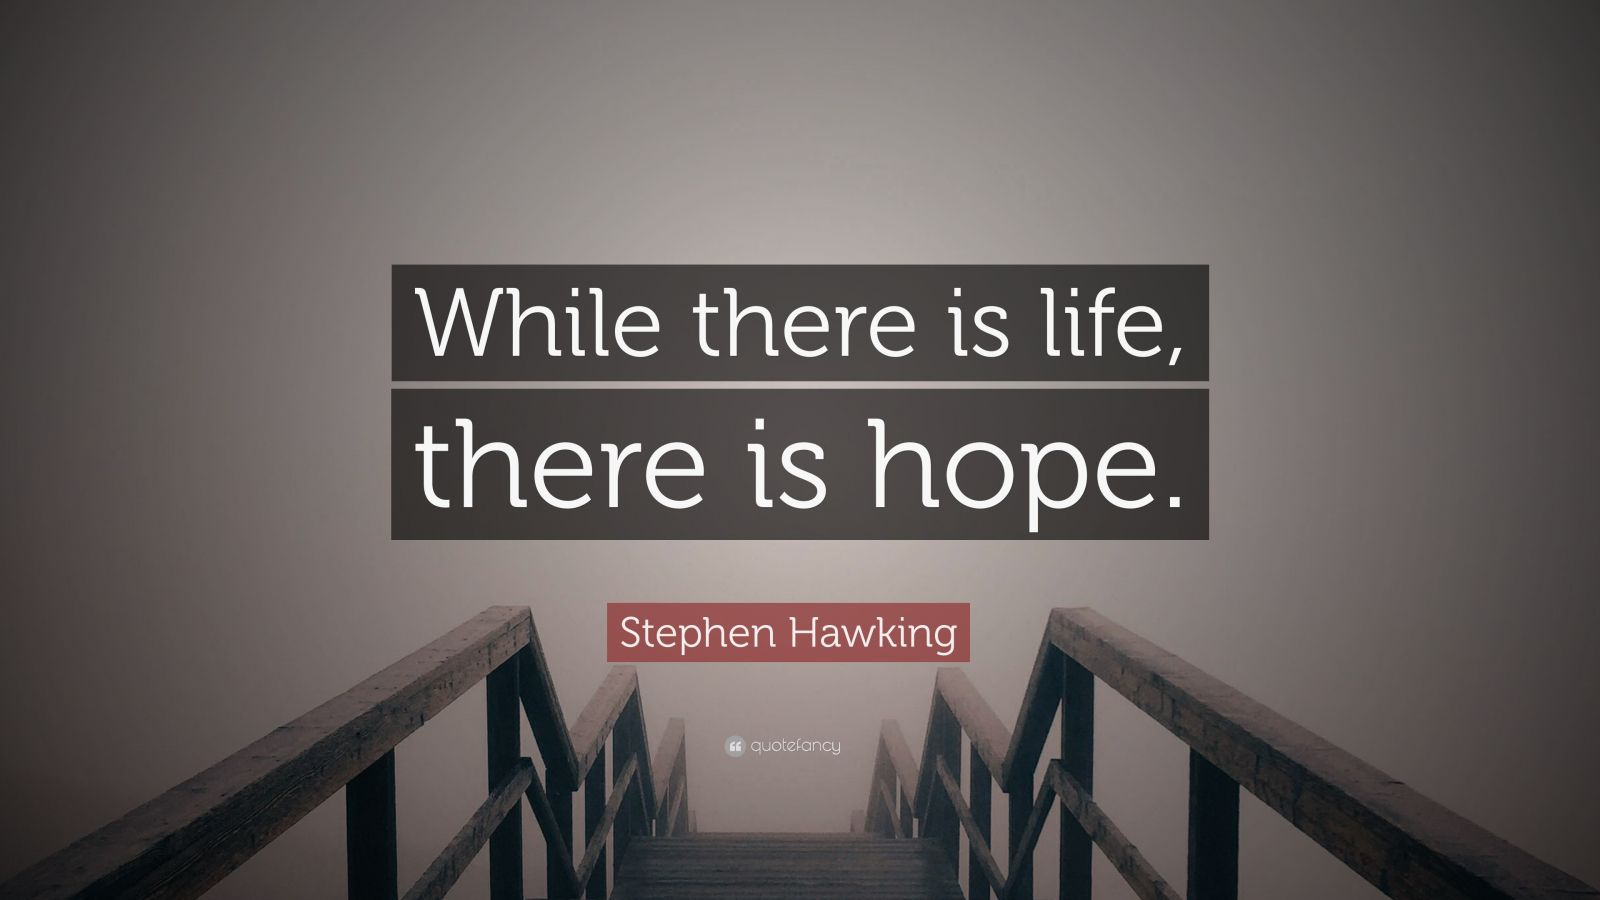 Nikola Tesla Wallpaper Quote Stephen Hawking Quote While There Is Life There Is Hope